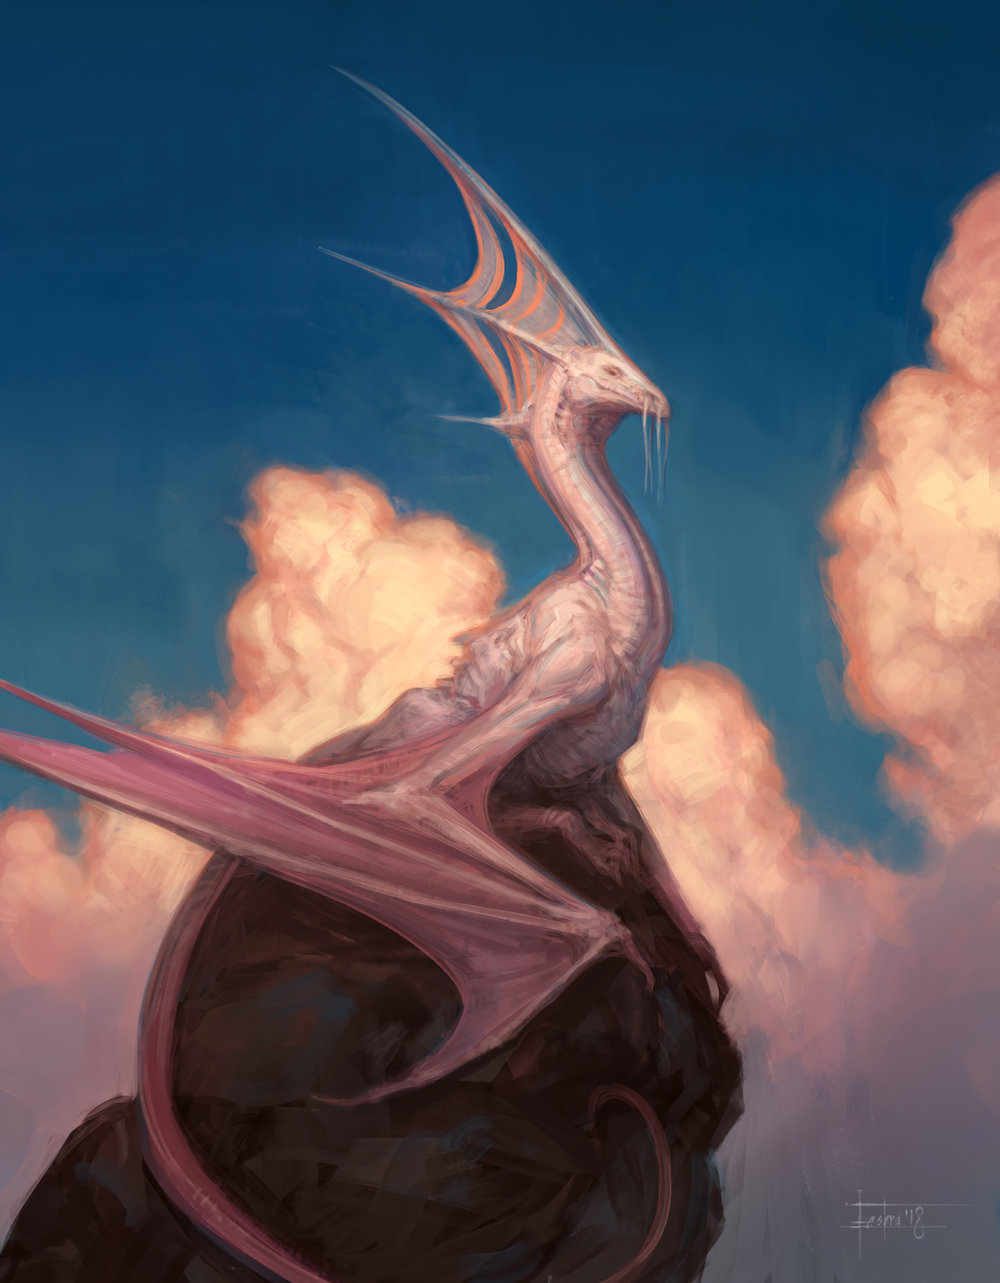 Cloud Dragon final image